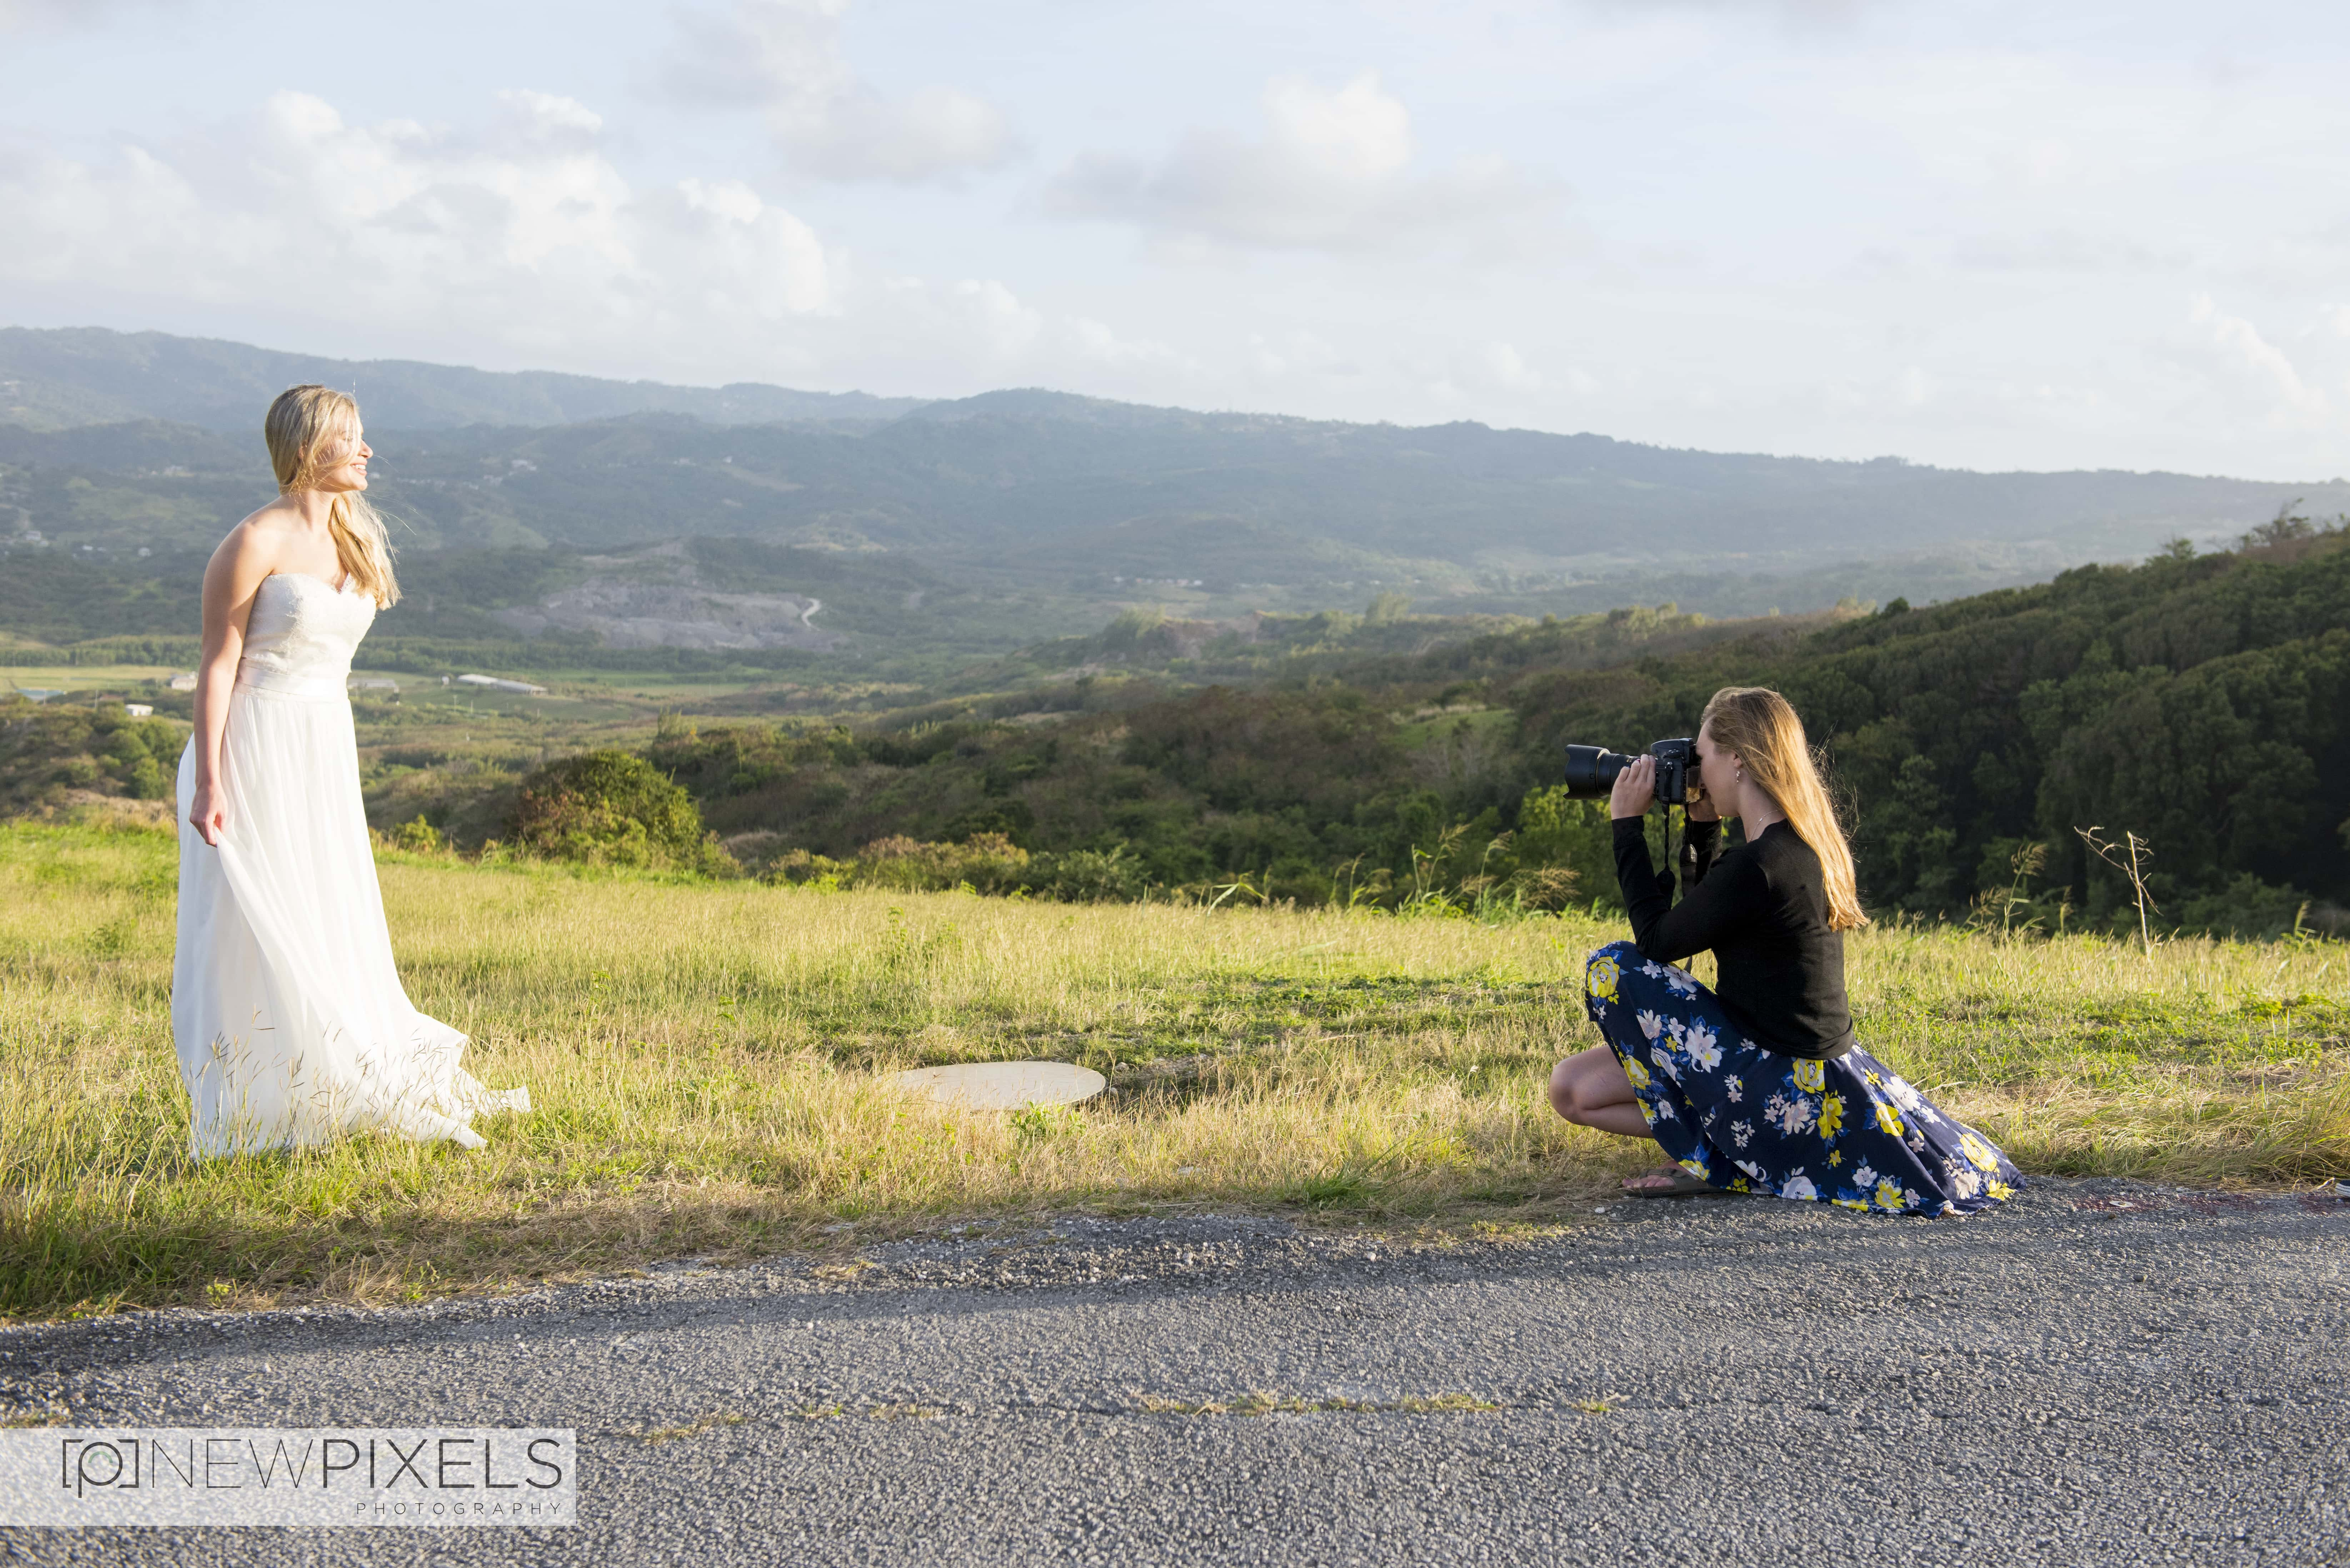 Behind_the_Scenes_Fashion_Shoot9